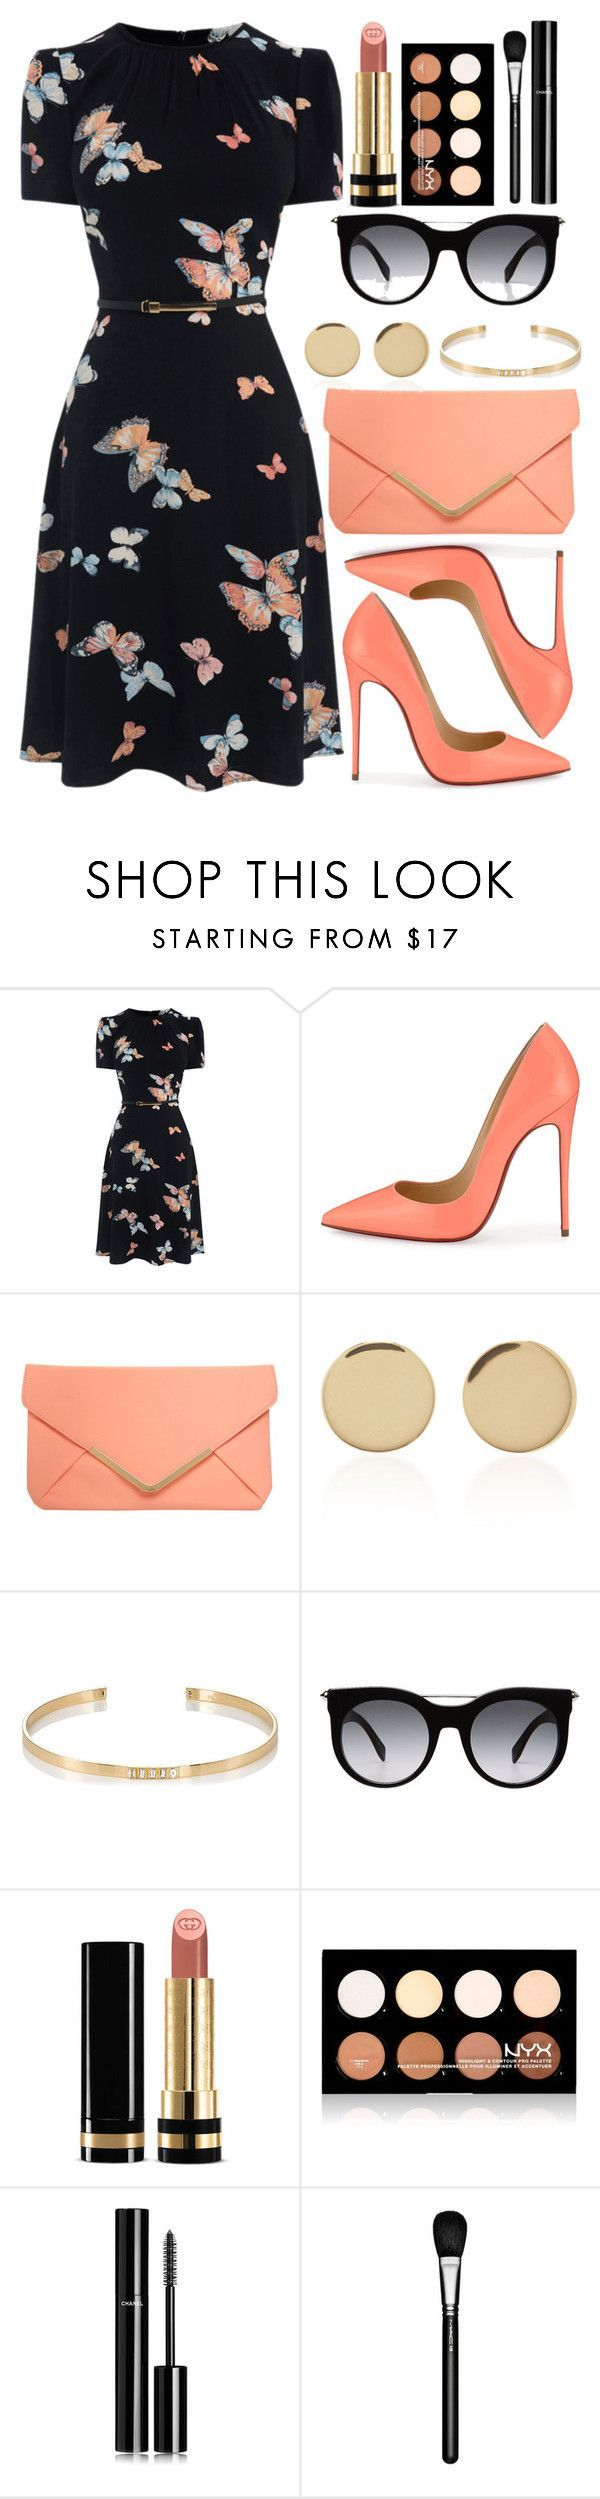 """Untitled #4374"" by natalyasidunova ❤ liked on Polyvore featuring Christian Louboutin, Dorothy Perkins, Magdalena Frackowiak, Ileana Makri, Alexander McQueen, Gucci, NYX, Chanel and MAC Cosmetics"